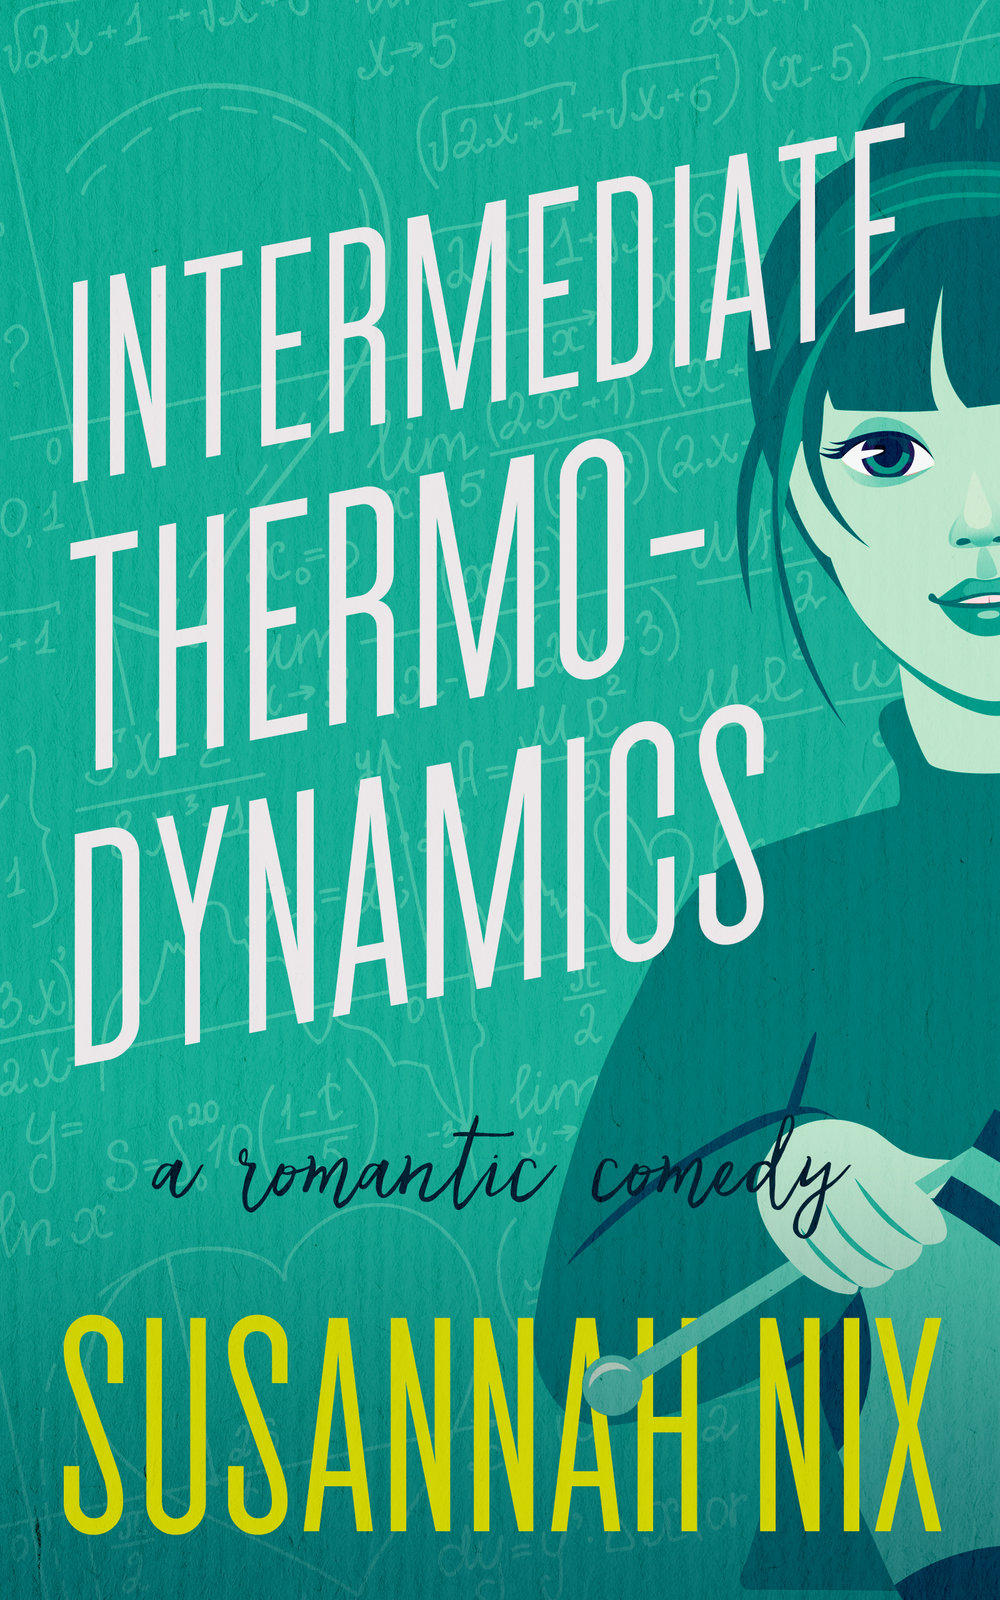 IntermediateThermodynamics_cover6.jpg